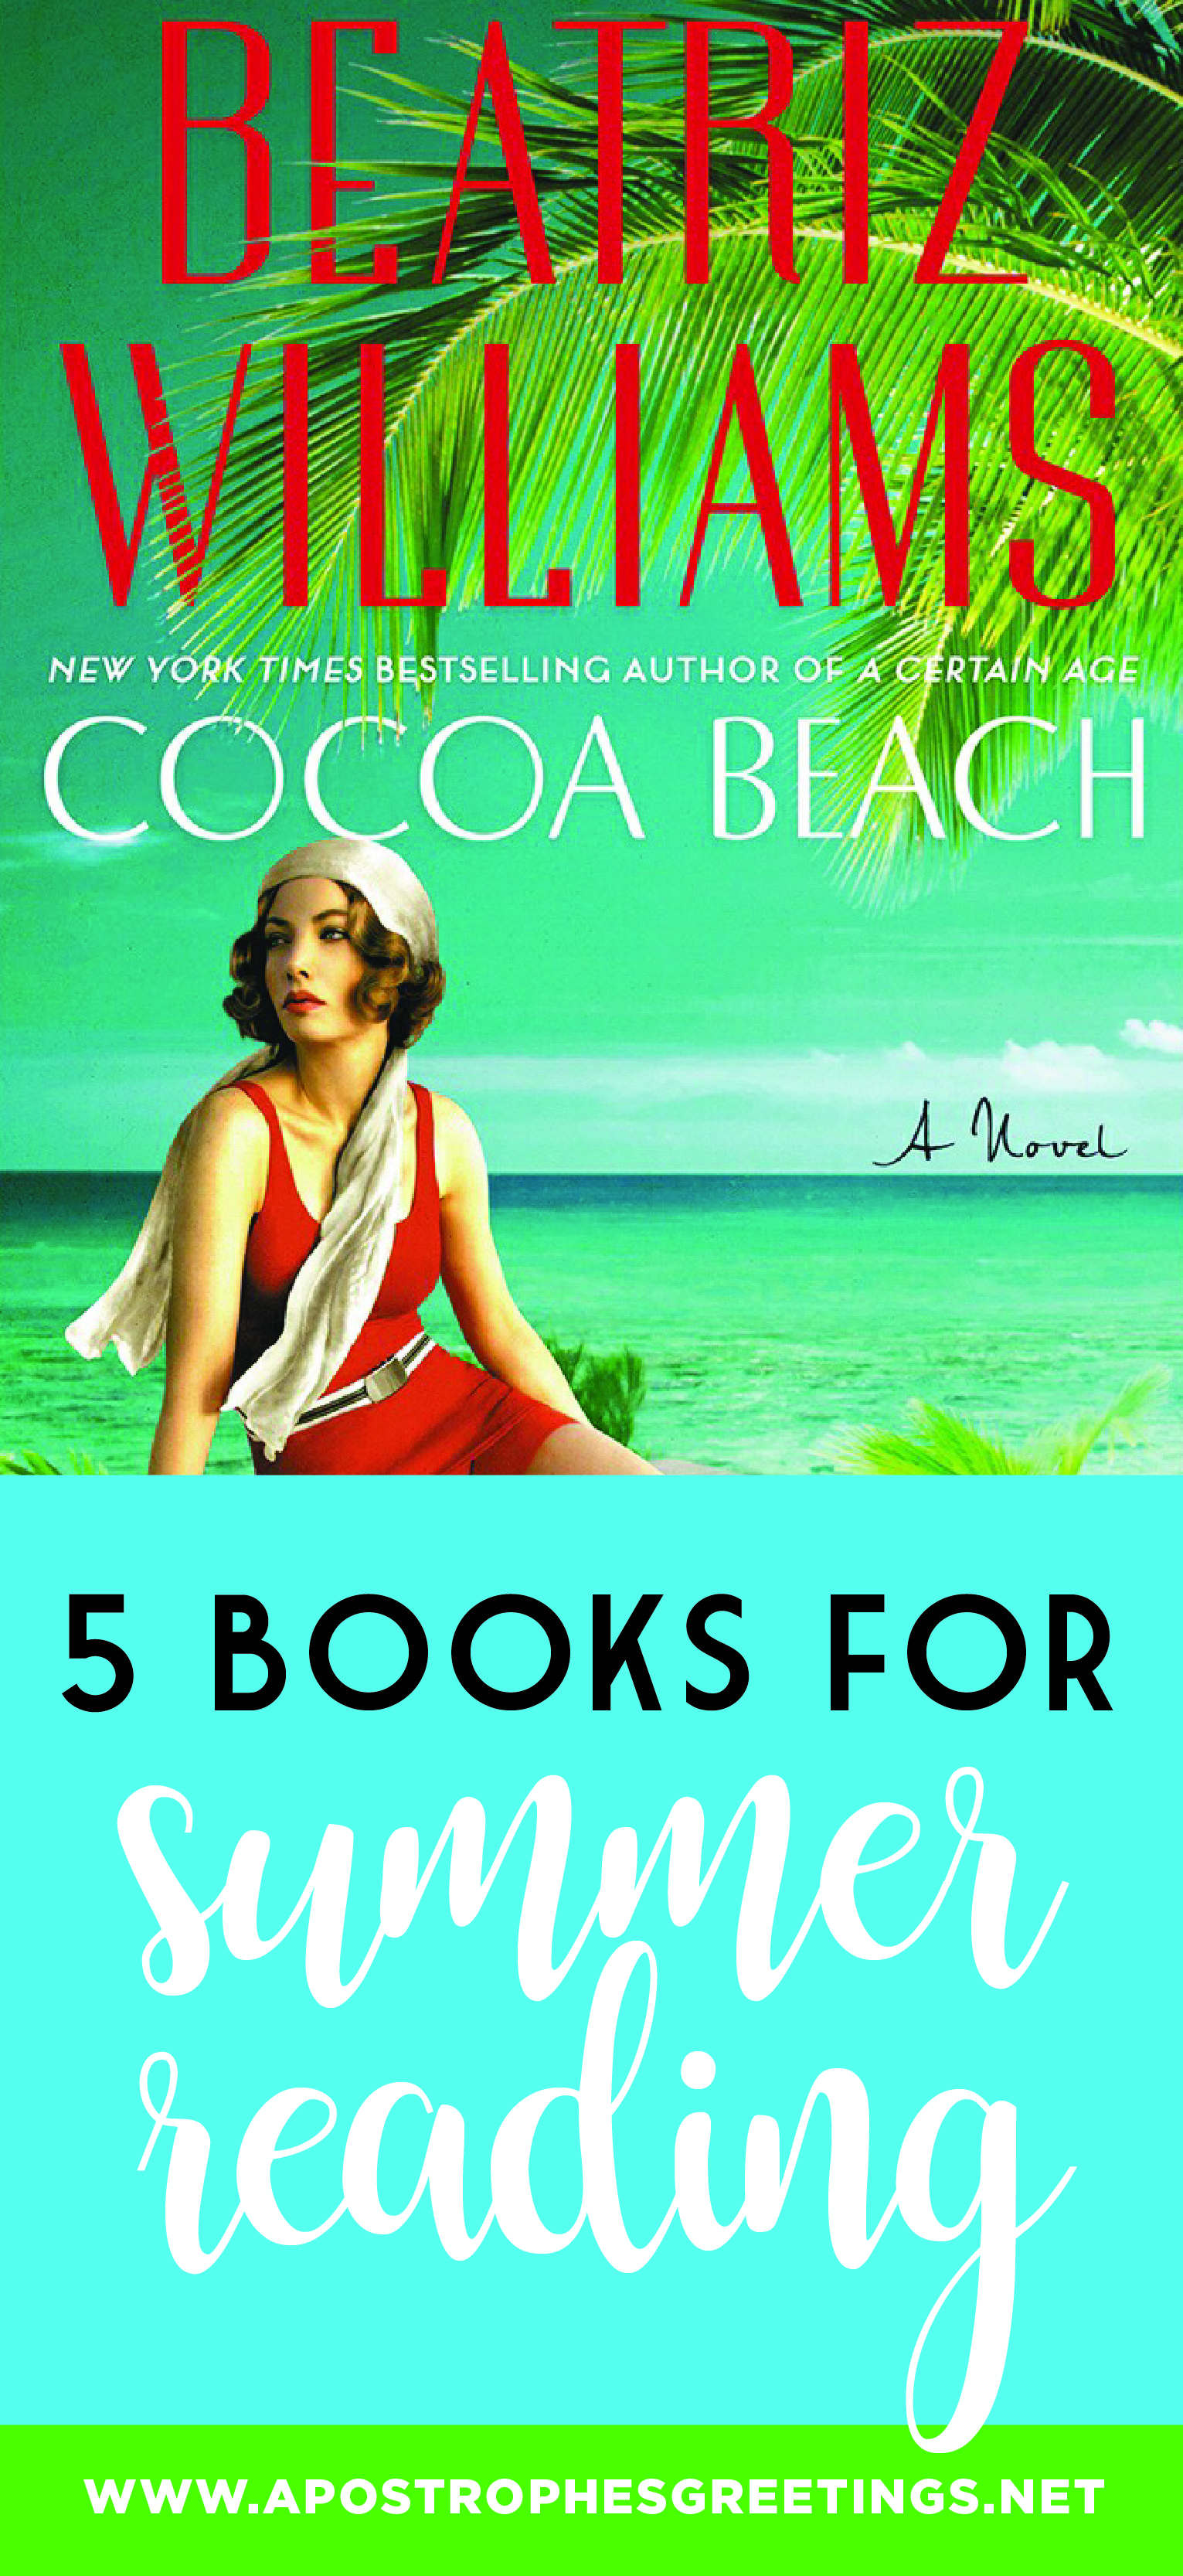 5 Great Books for Summer-01.jpg